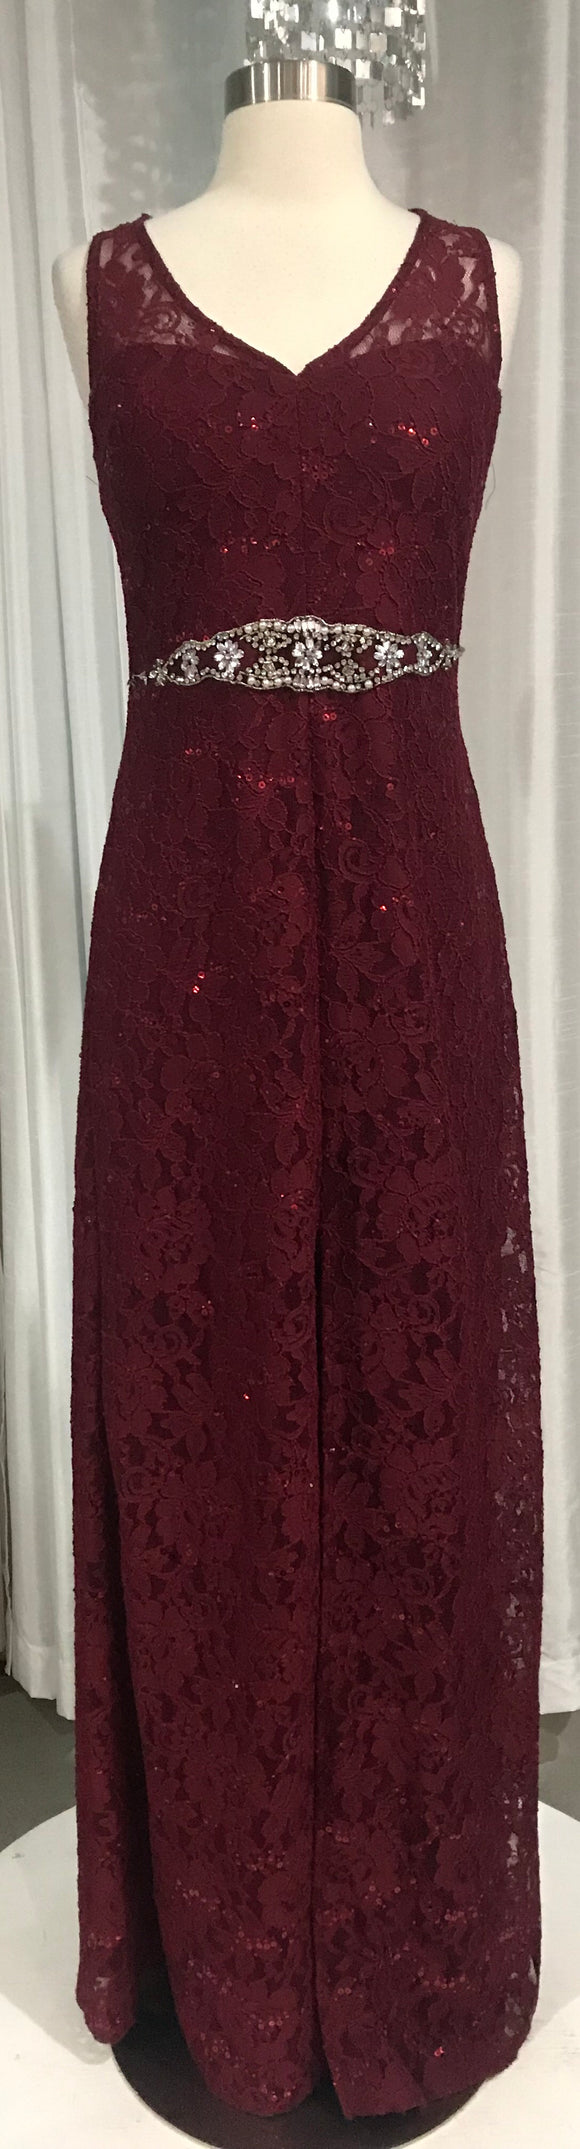 MYMICHELLE Sparkly Maroon Lace Gown With Beaded Waistline Size 13